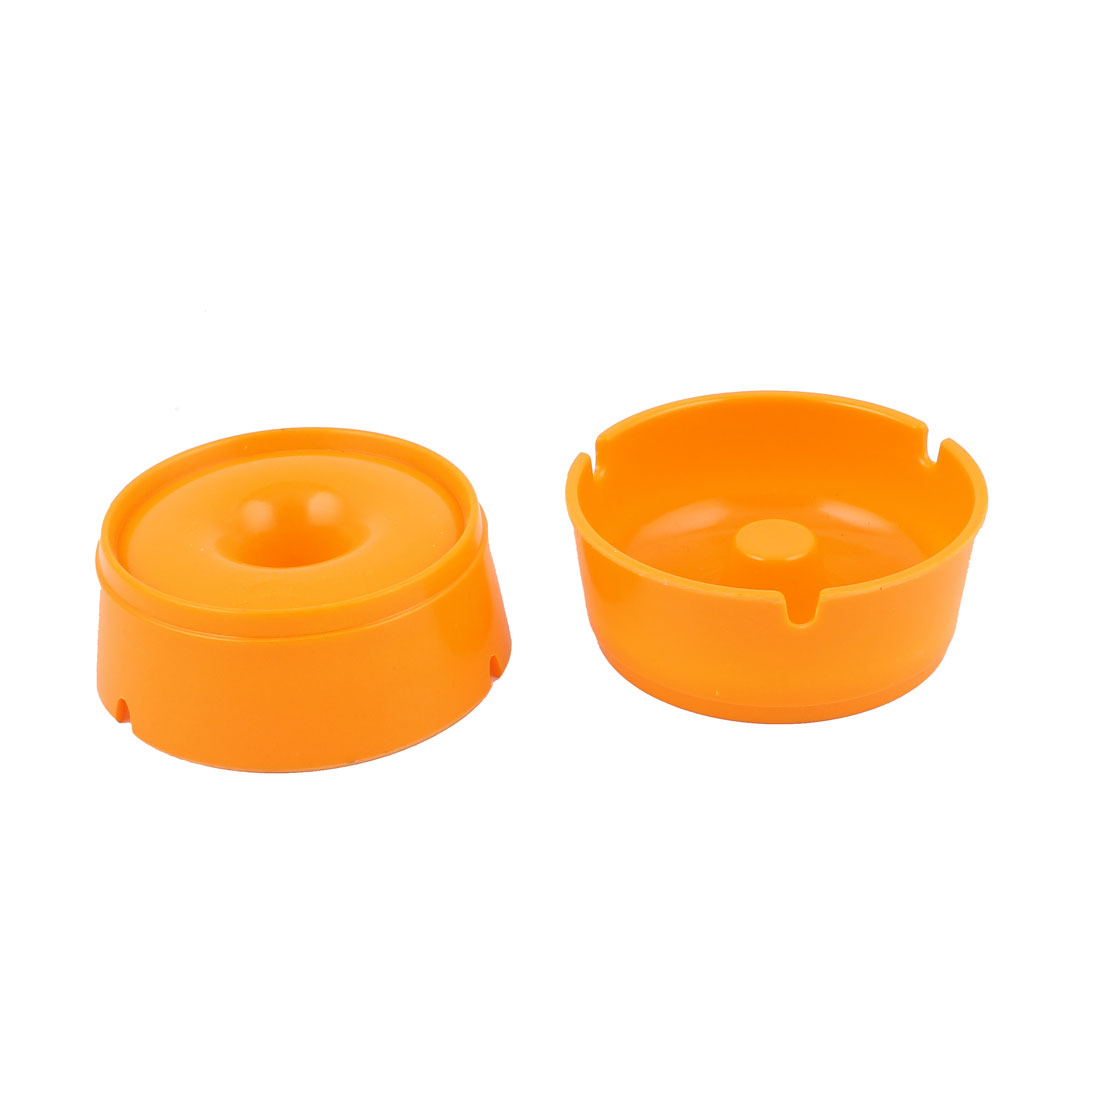 Plastic Portable Home Cigarette Ashtray Container Holder Case Orange 2PCS